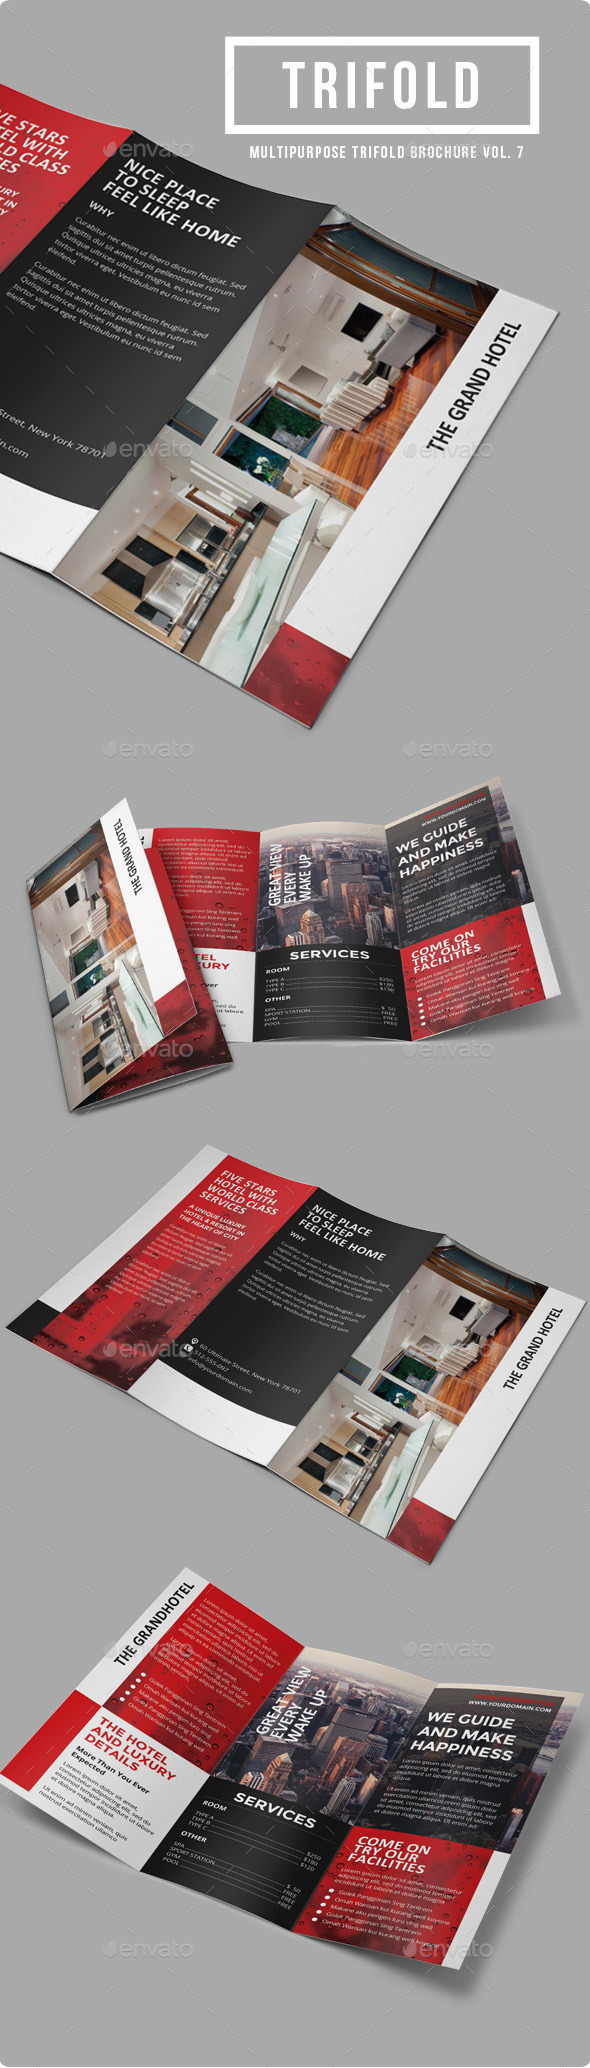 GraphicRiver Sun Hotel Multipurpose Trifold Brochure Vol 7 9870612